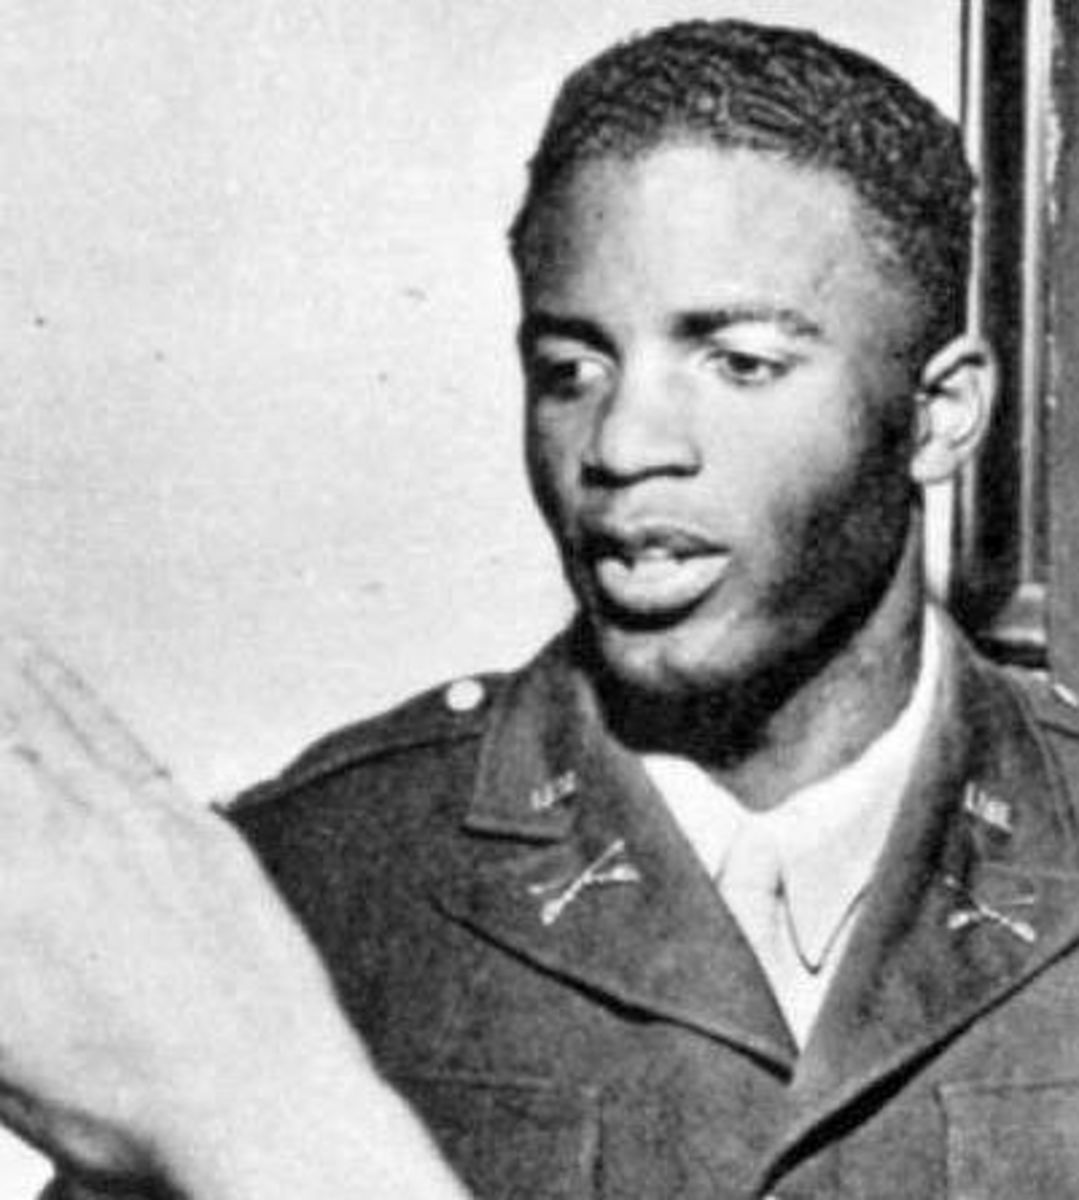 Jackie Robinson, who would be the first African-American to play in Major League Baseball, was a member of the 761st Tank Battalion. Circa 1943.